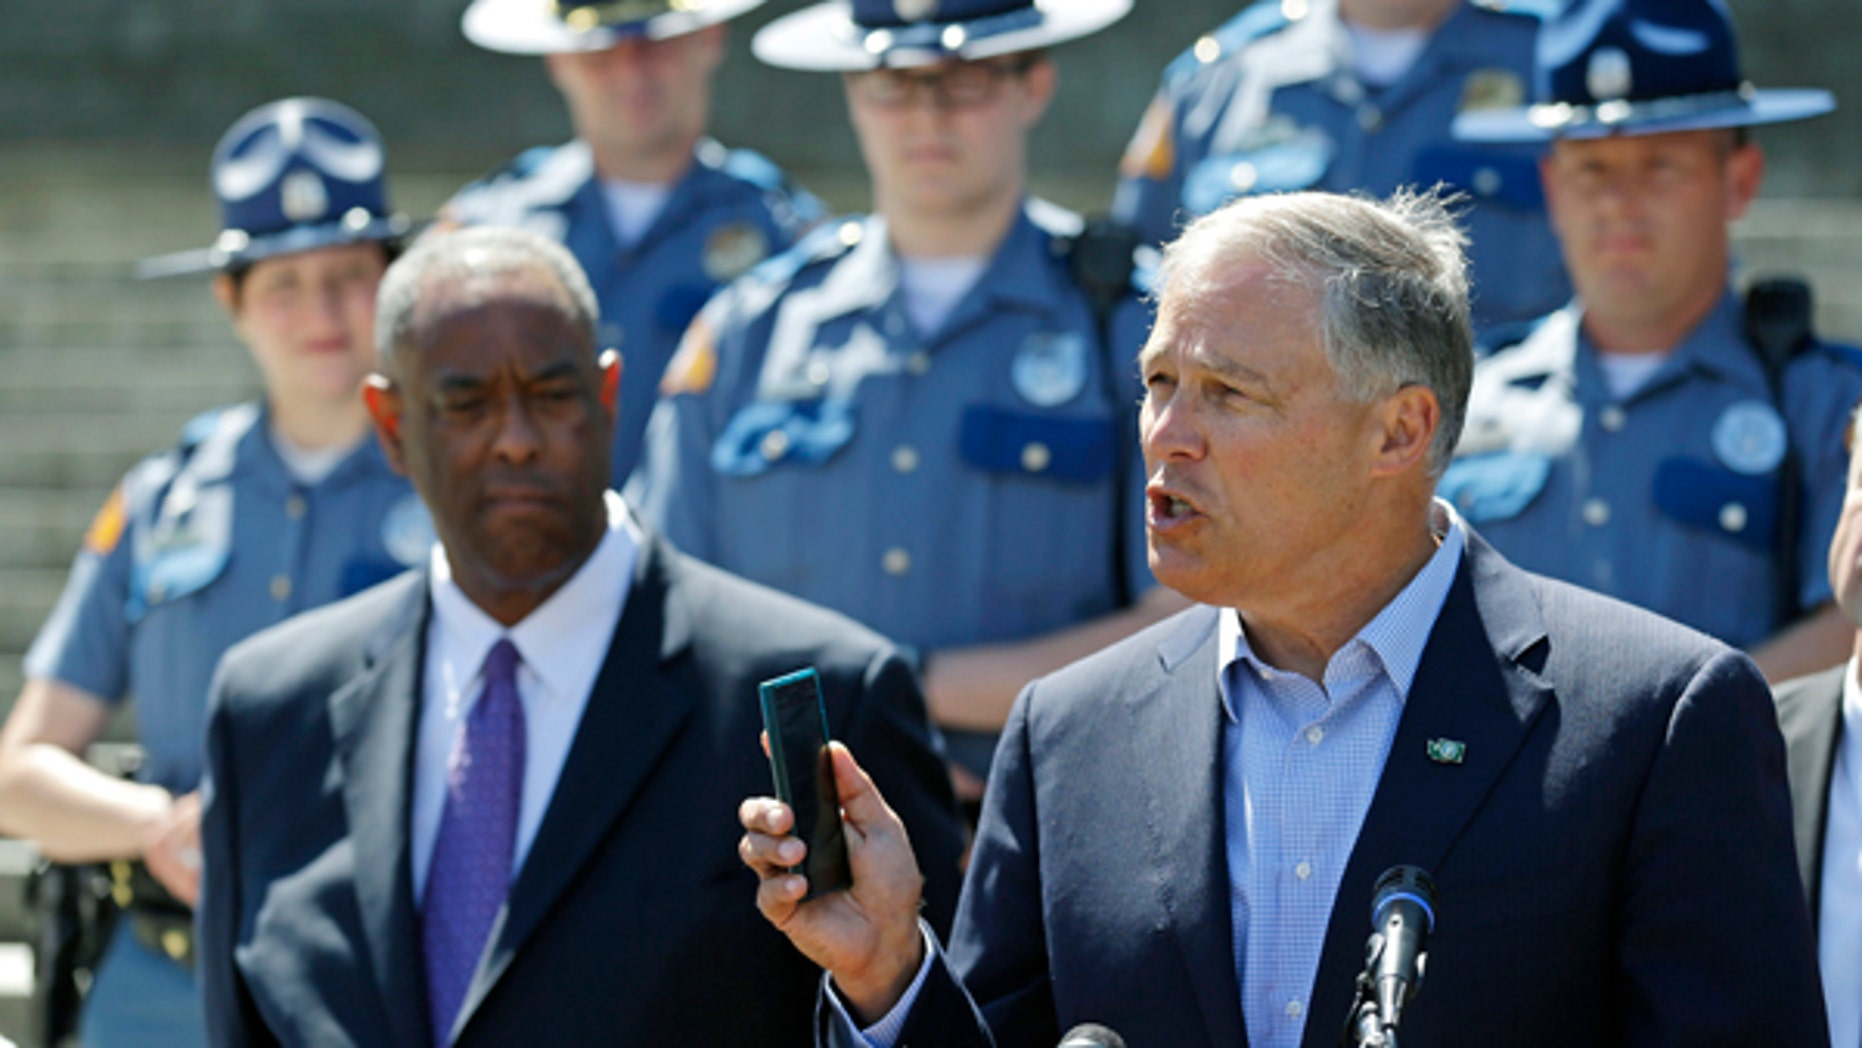 Washington Gov. Jay Inslee, right, holds a cell phone as he speaks during a press event at the Capitol in Olympia, Wash., to raise awareness of Washington state's new law prohibiting the use of nearly all phones and mobile devices while driving.